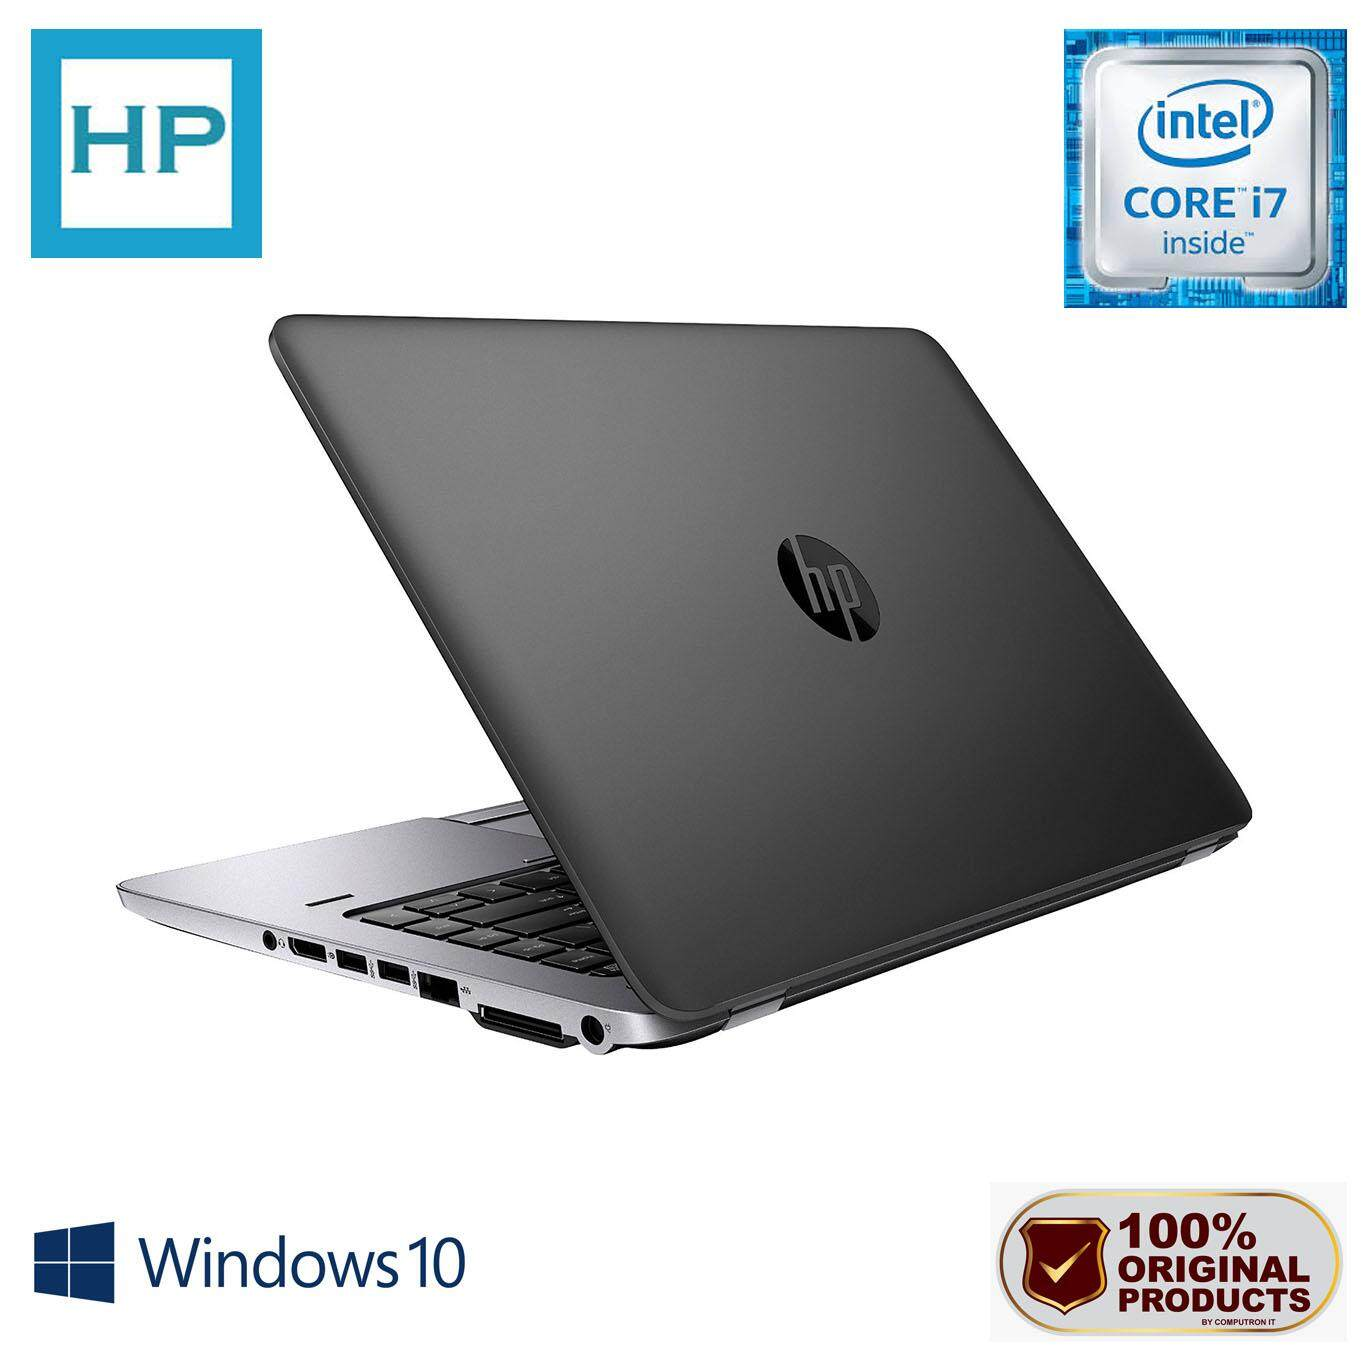 HP ELITEBOOK 840 G1 ULTRABOOK - CORE I7 3.30GHZ  8GBRAM 500GB  HDD - 1 YEAR WARRANTY Malaysia